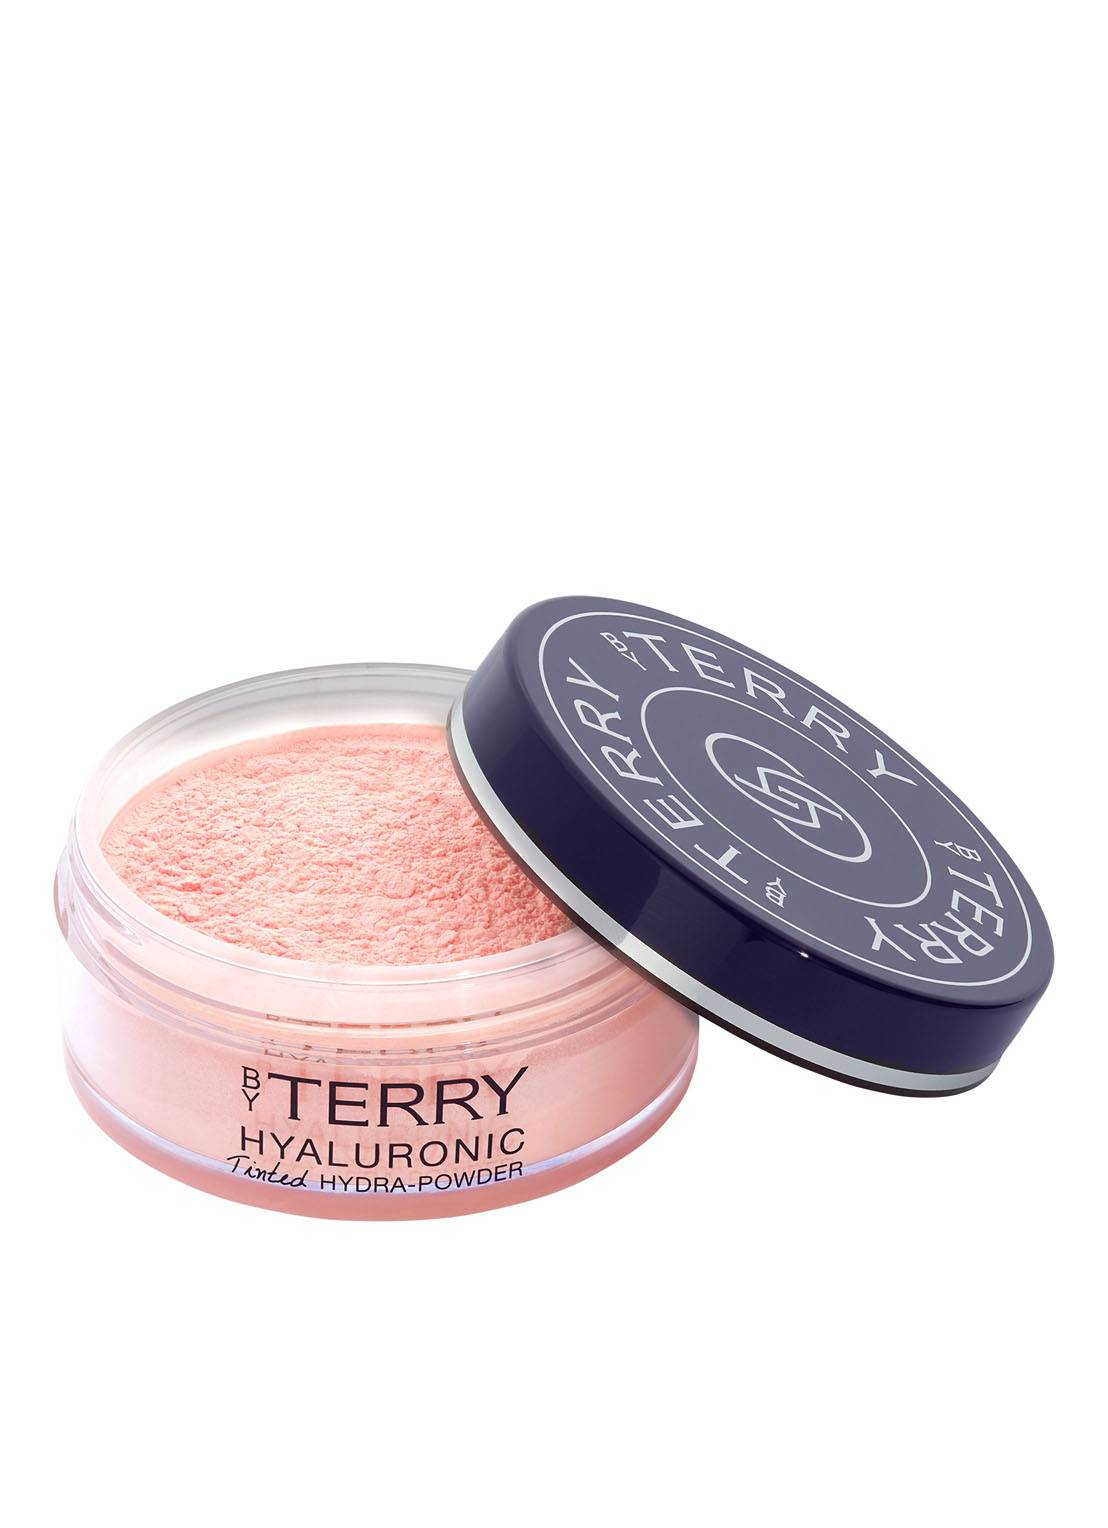 by terry Hyaluronic Tinted Hydra Powder - poudre libre - N1. Rosy Light